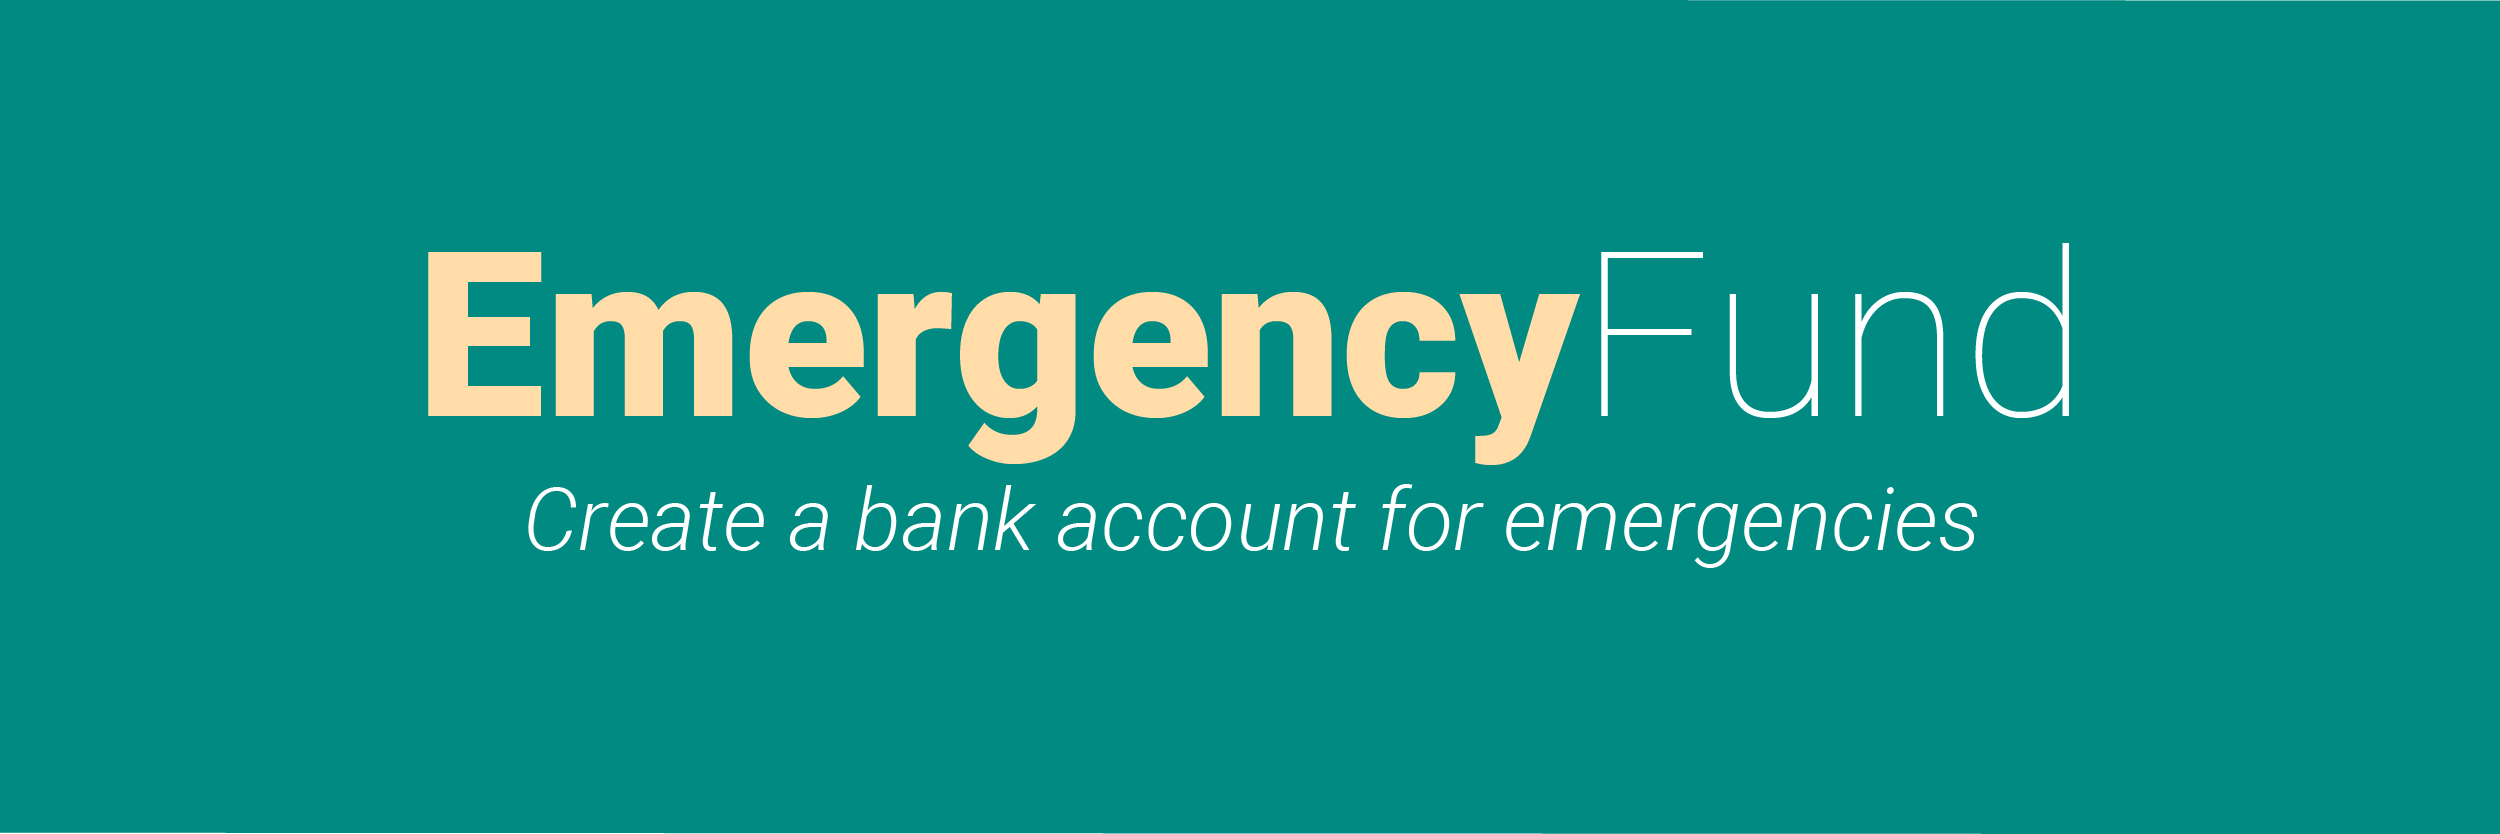 Emergency Fund-01